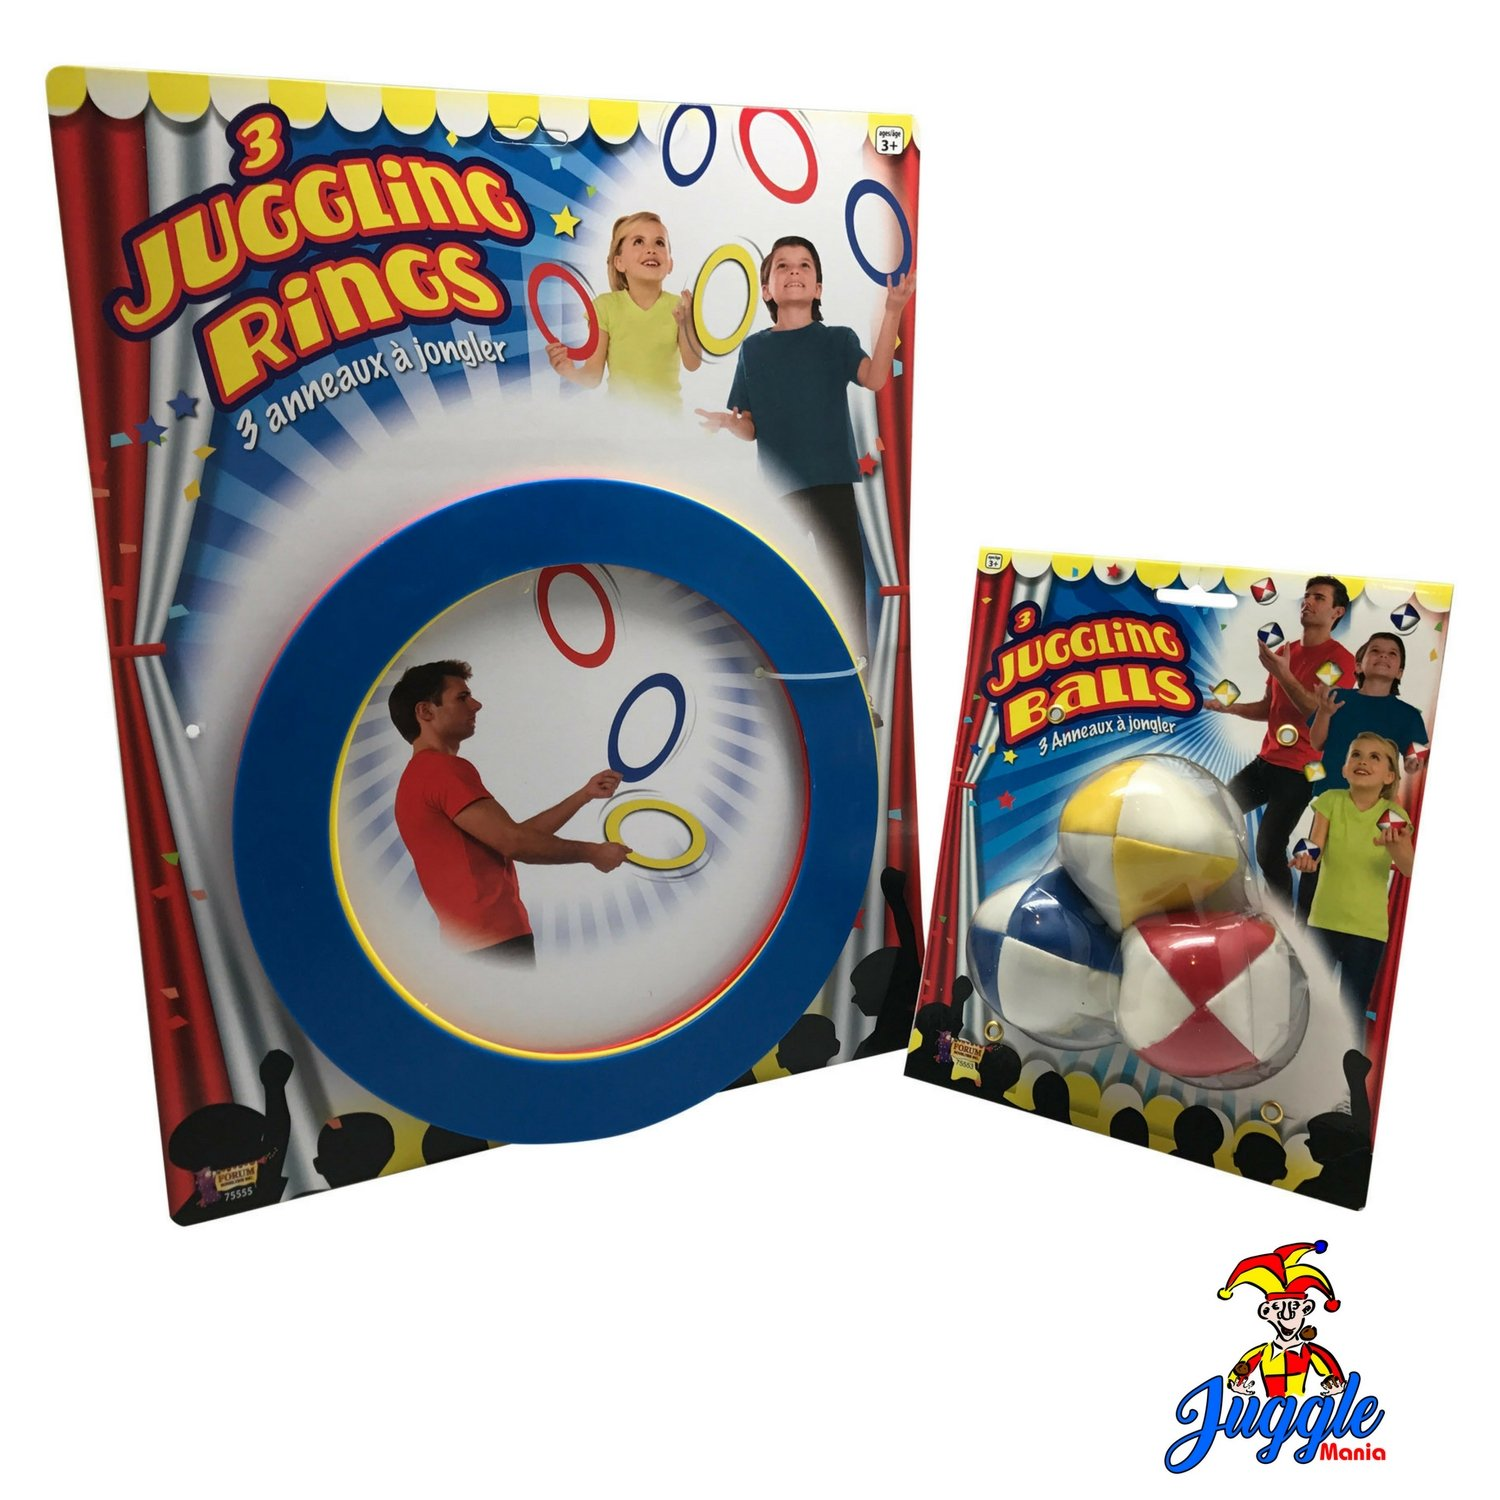 Juggling Set For Beginners Includes Juggling Balls and Juggling Rings by Juggle Mania